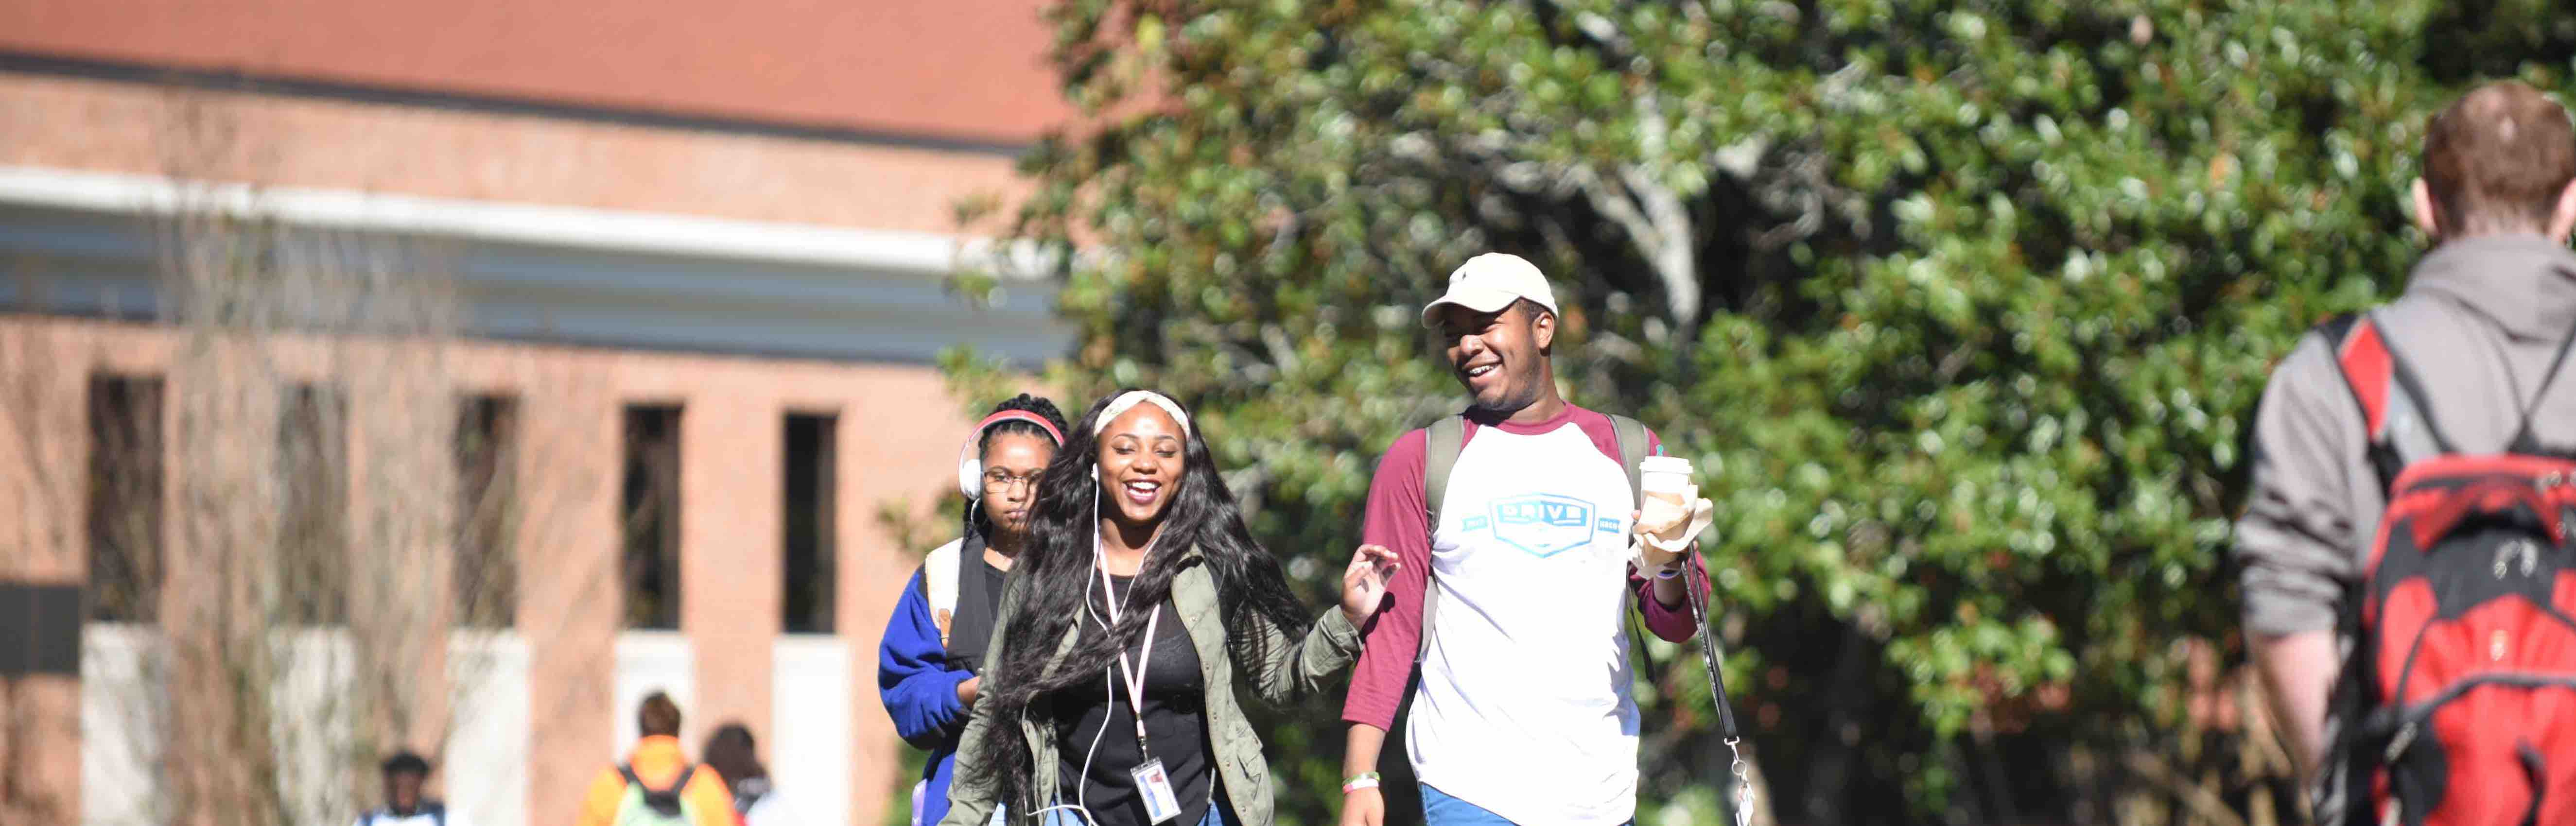 laughing-students-walking-campus-d.jpg